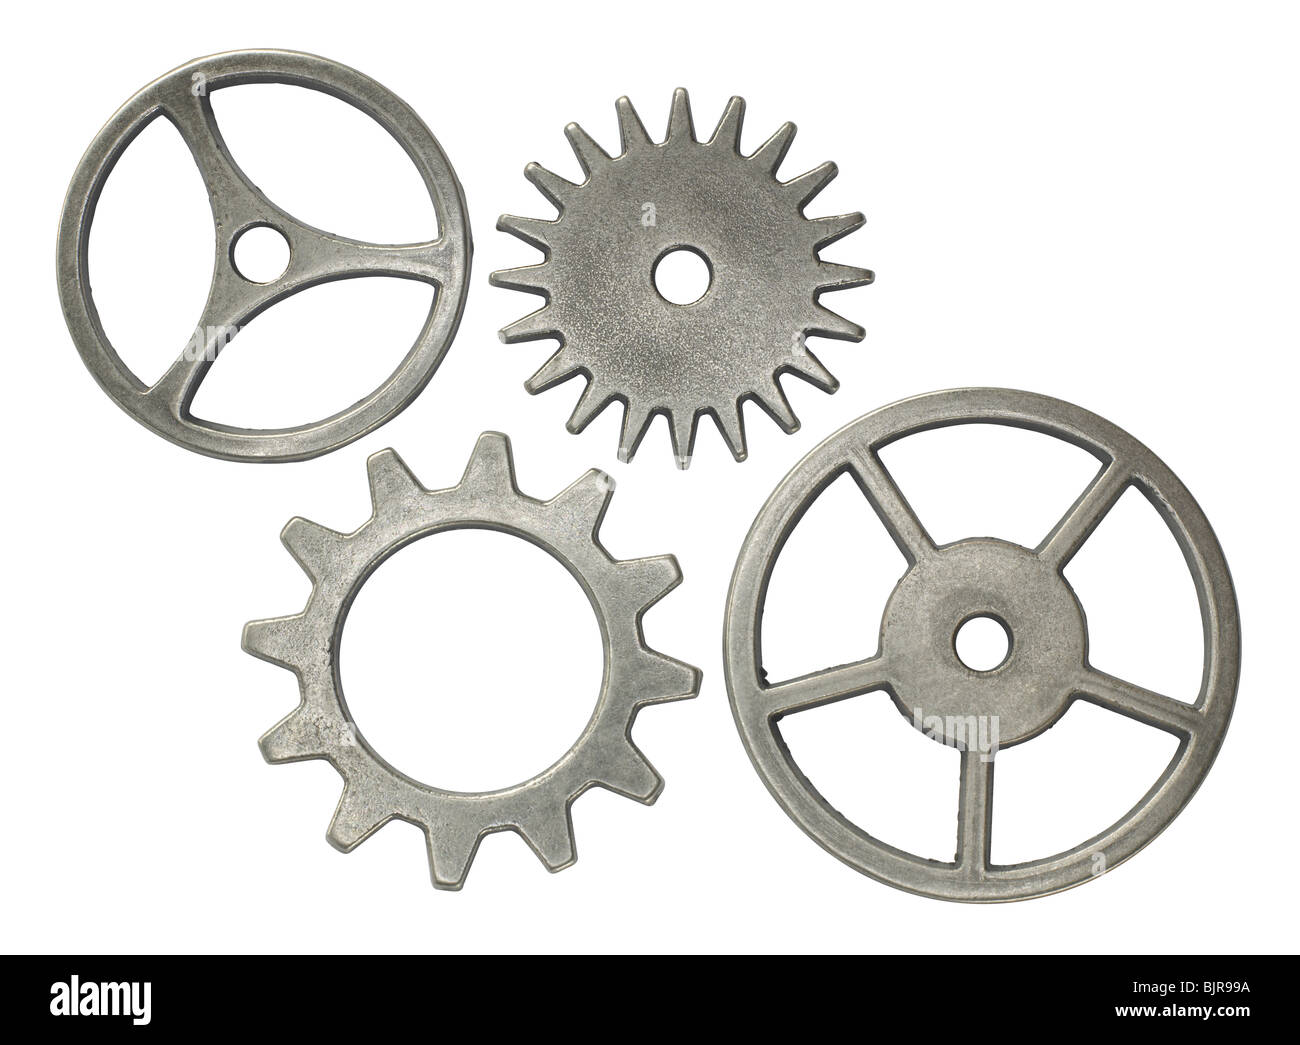 Collection of gears on white background - Stock Image